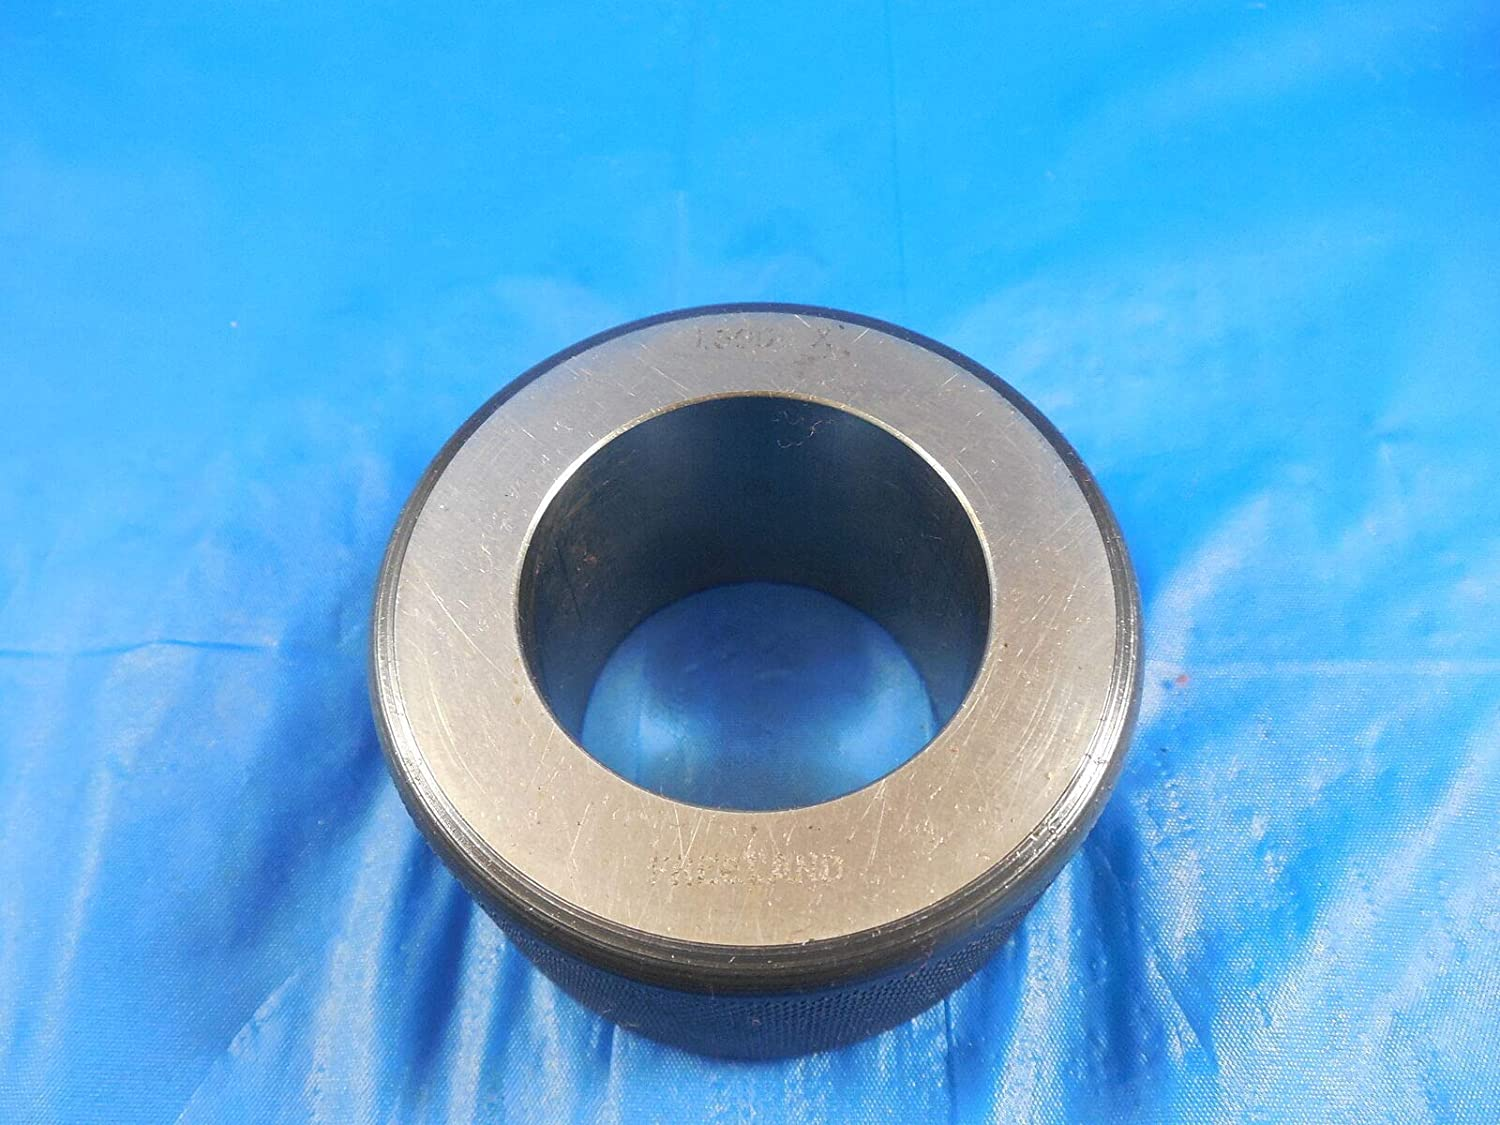 1.5000 Class X Master Plain BORE Ring GAGE ONSIZE 1 1/2 38.100 mm Inspection